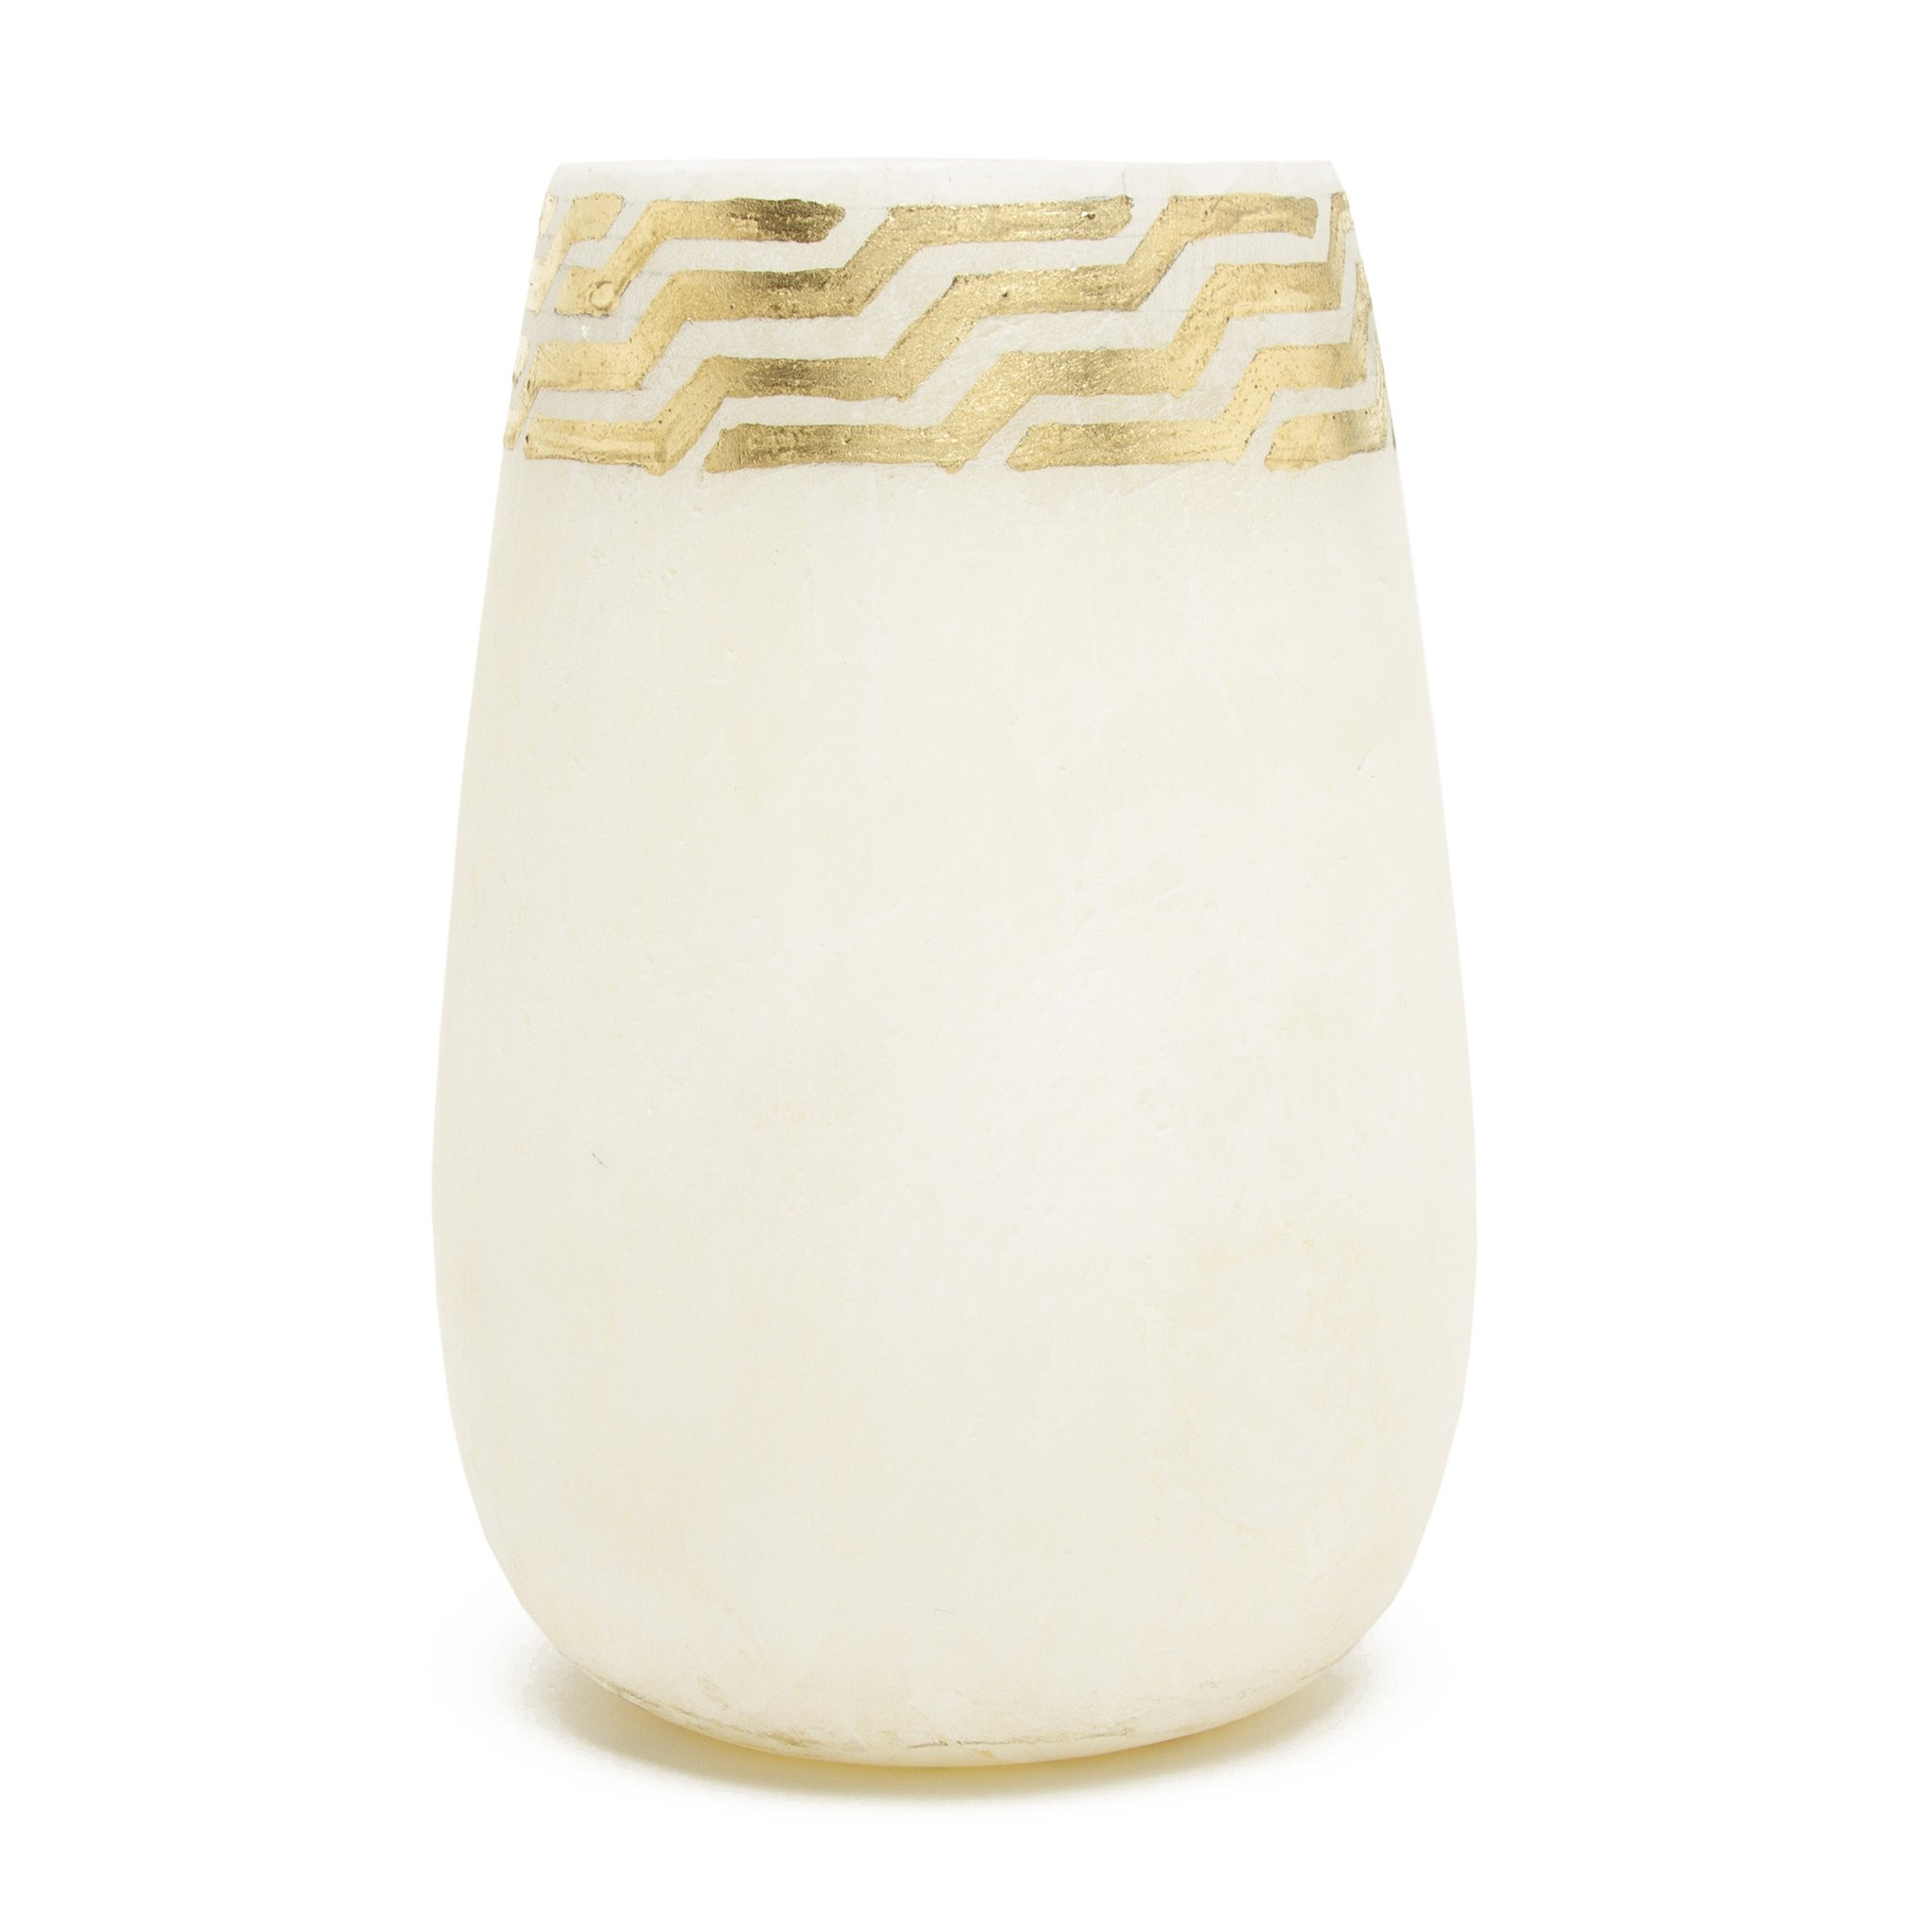 blue white striped vase of egyptian alabaster vessel with gold leaf detailing large the within egyptian alabaster vessel with gold leaf detailing large